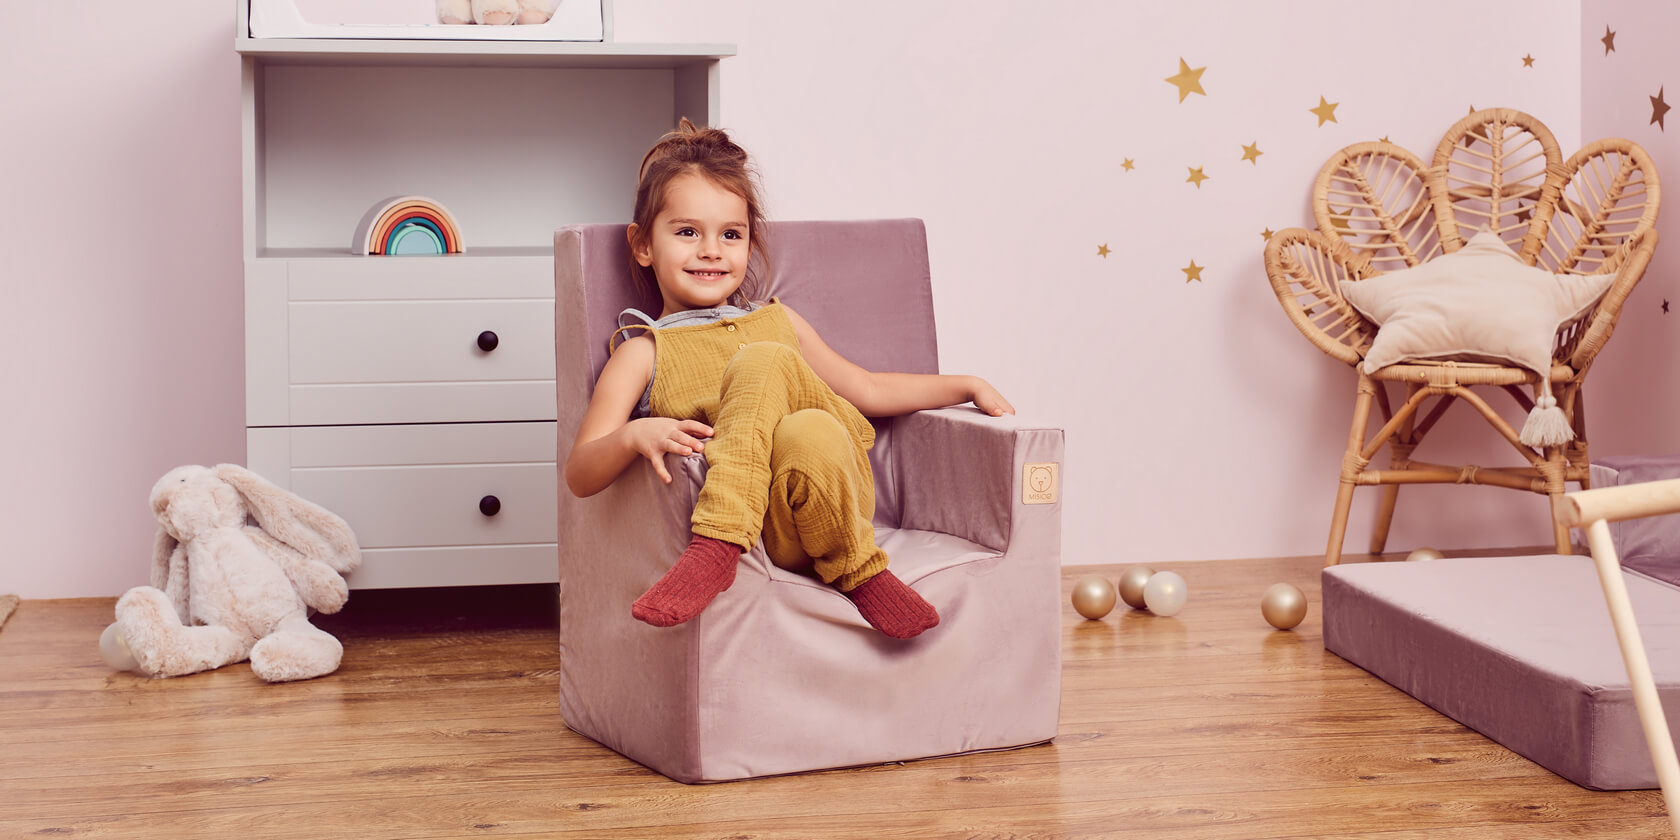 How to choose a foam seat for a child?